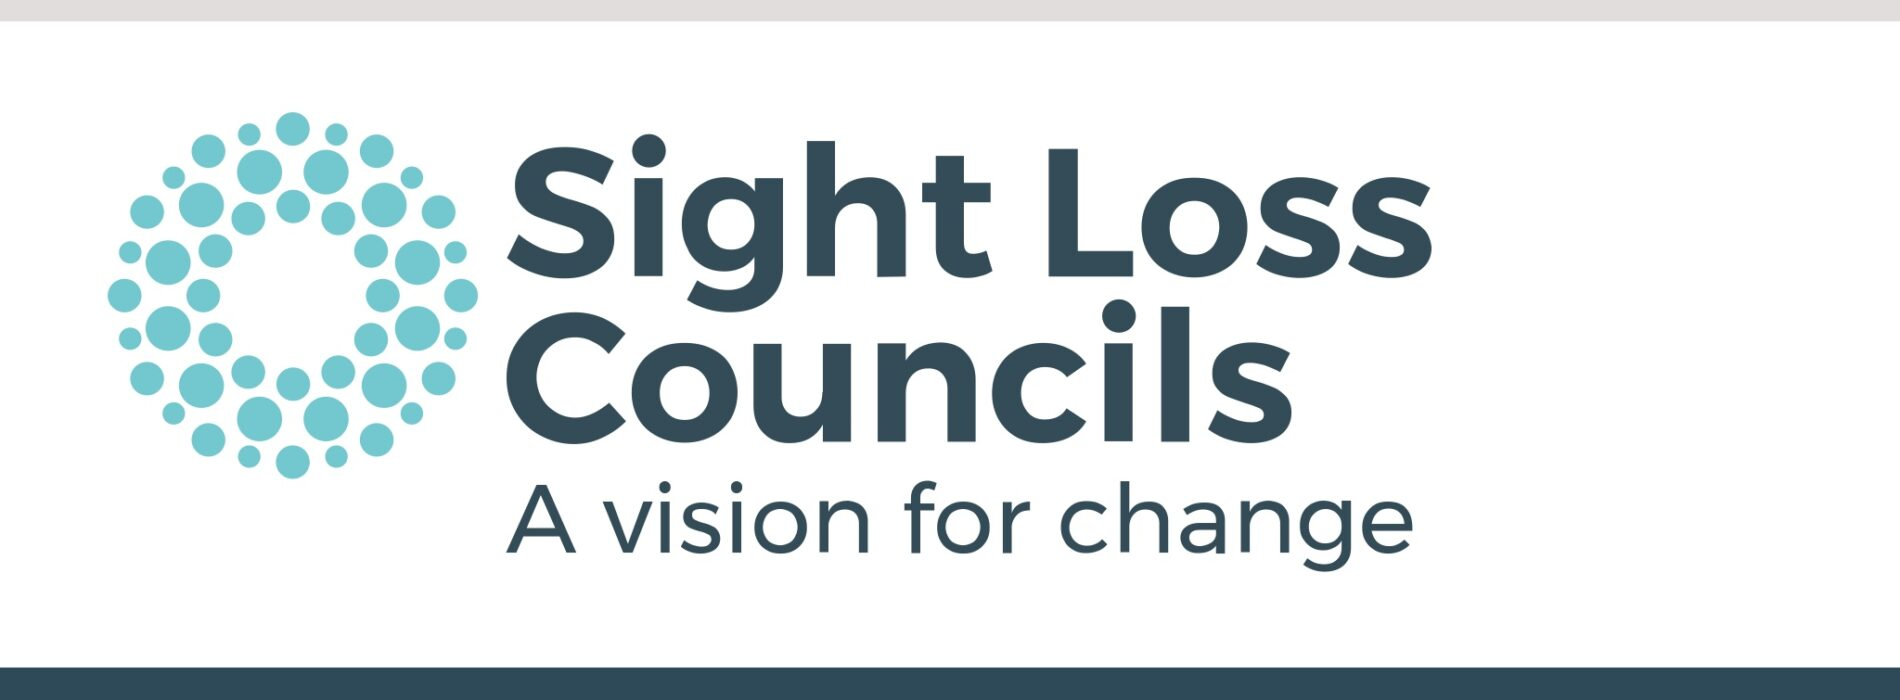 Sight Loss Councils launches website to support blind and partially sighted people